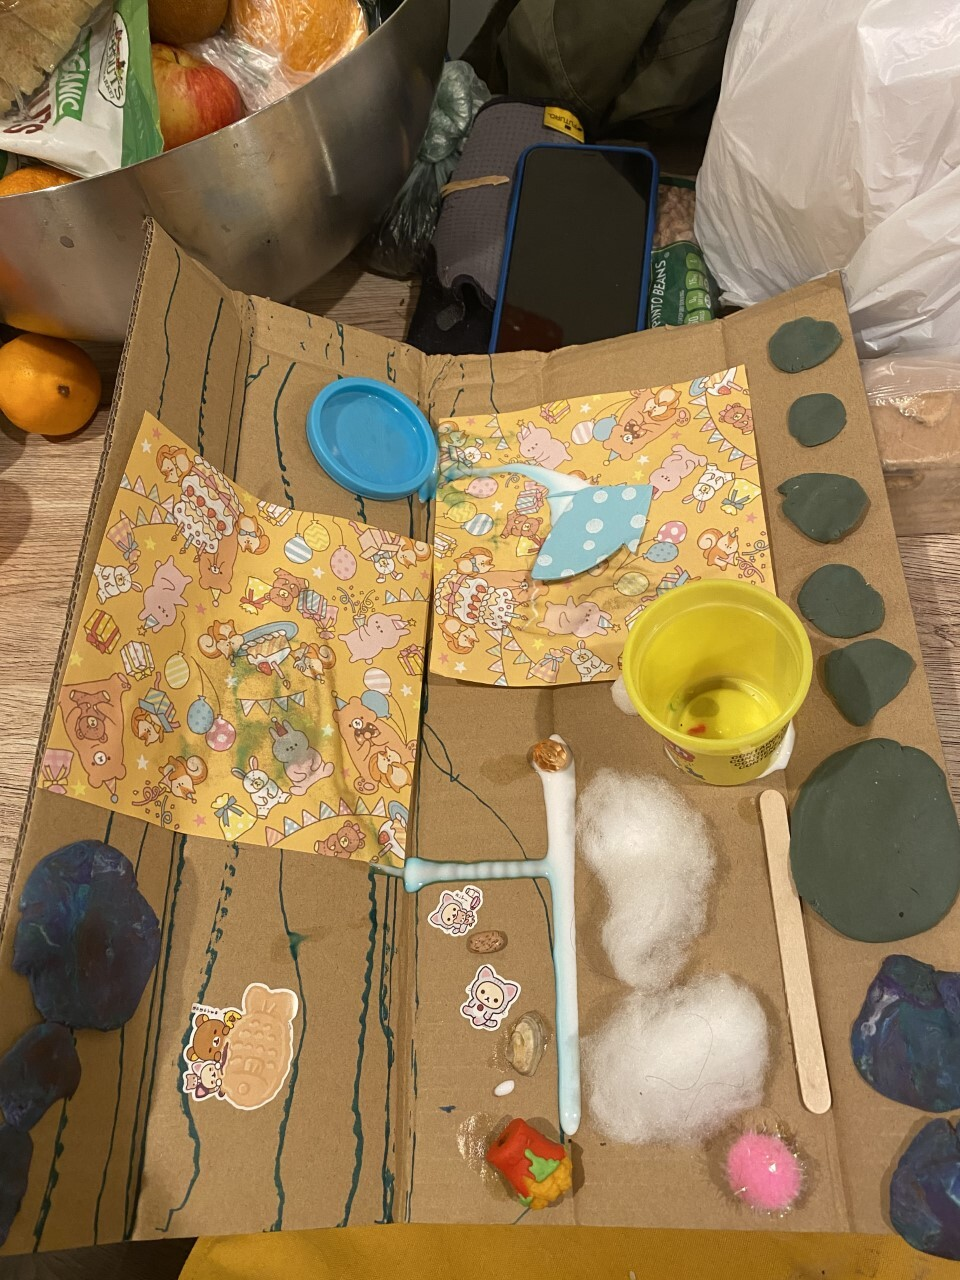 A piece of cardboard with everyday items like cotton, glue and Play-Doh.